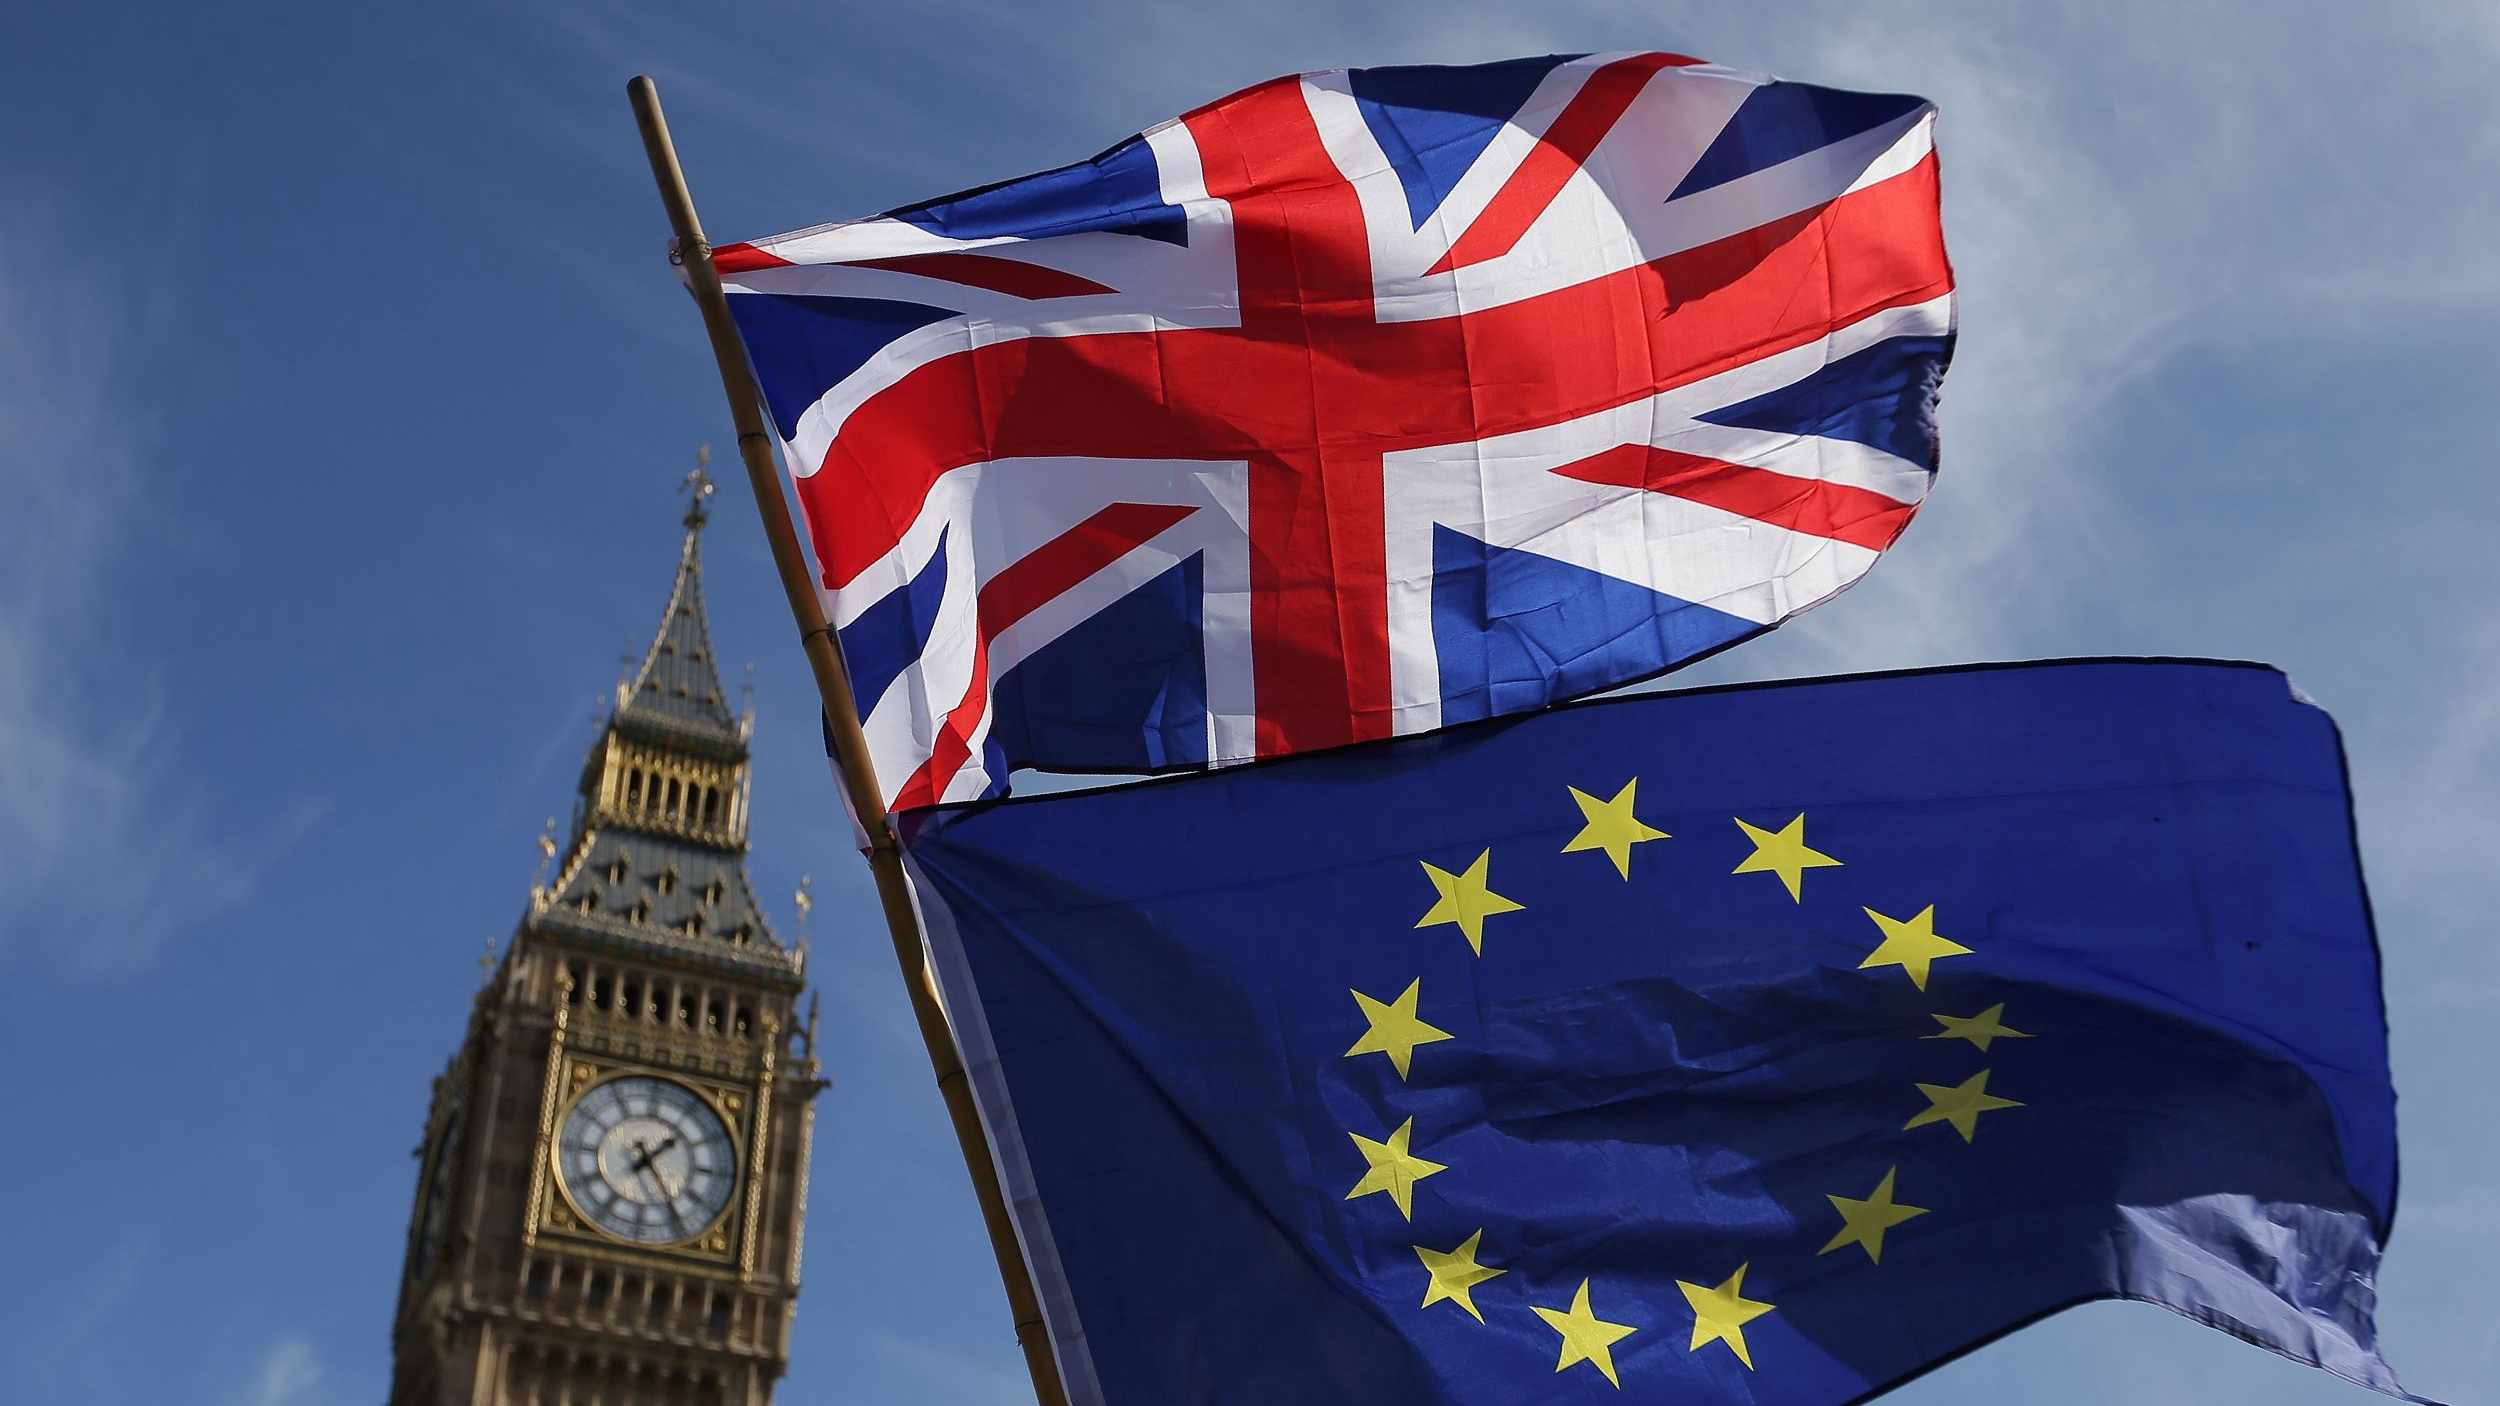 Brexit uncertainty jeopardises UK's long-term economic prospects